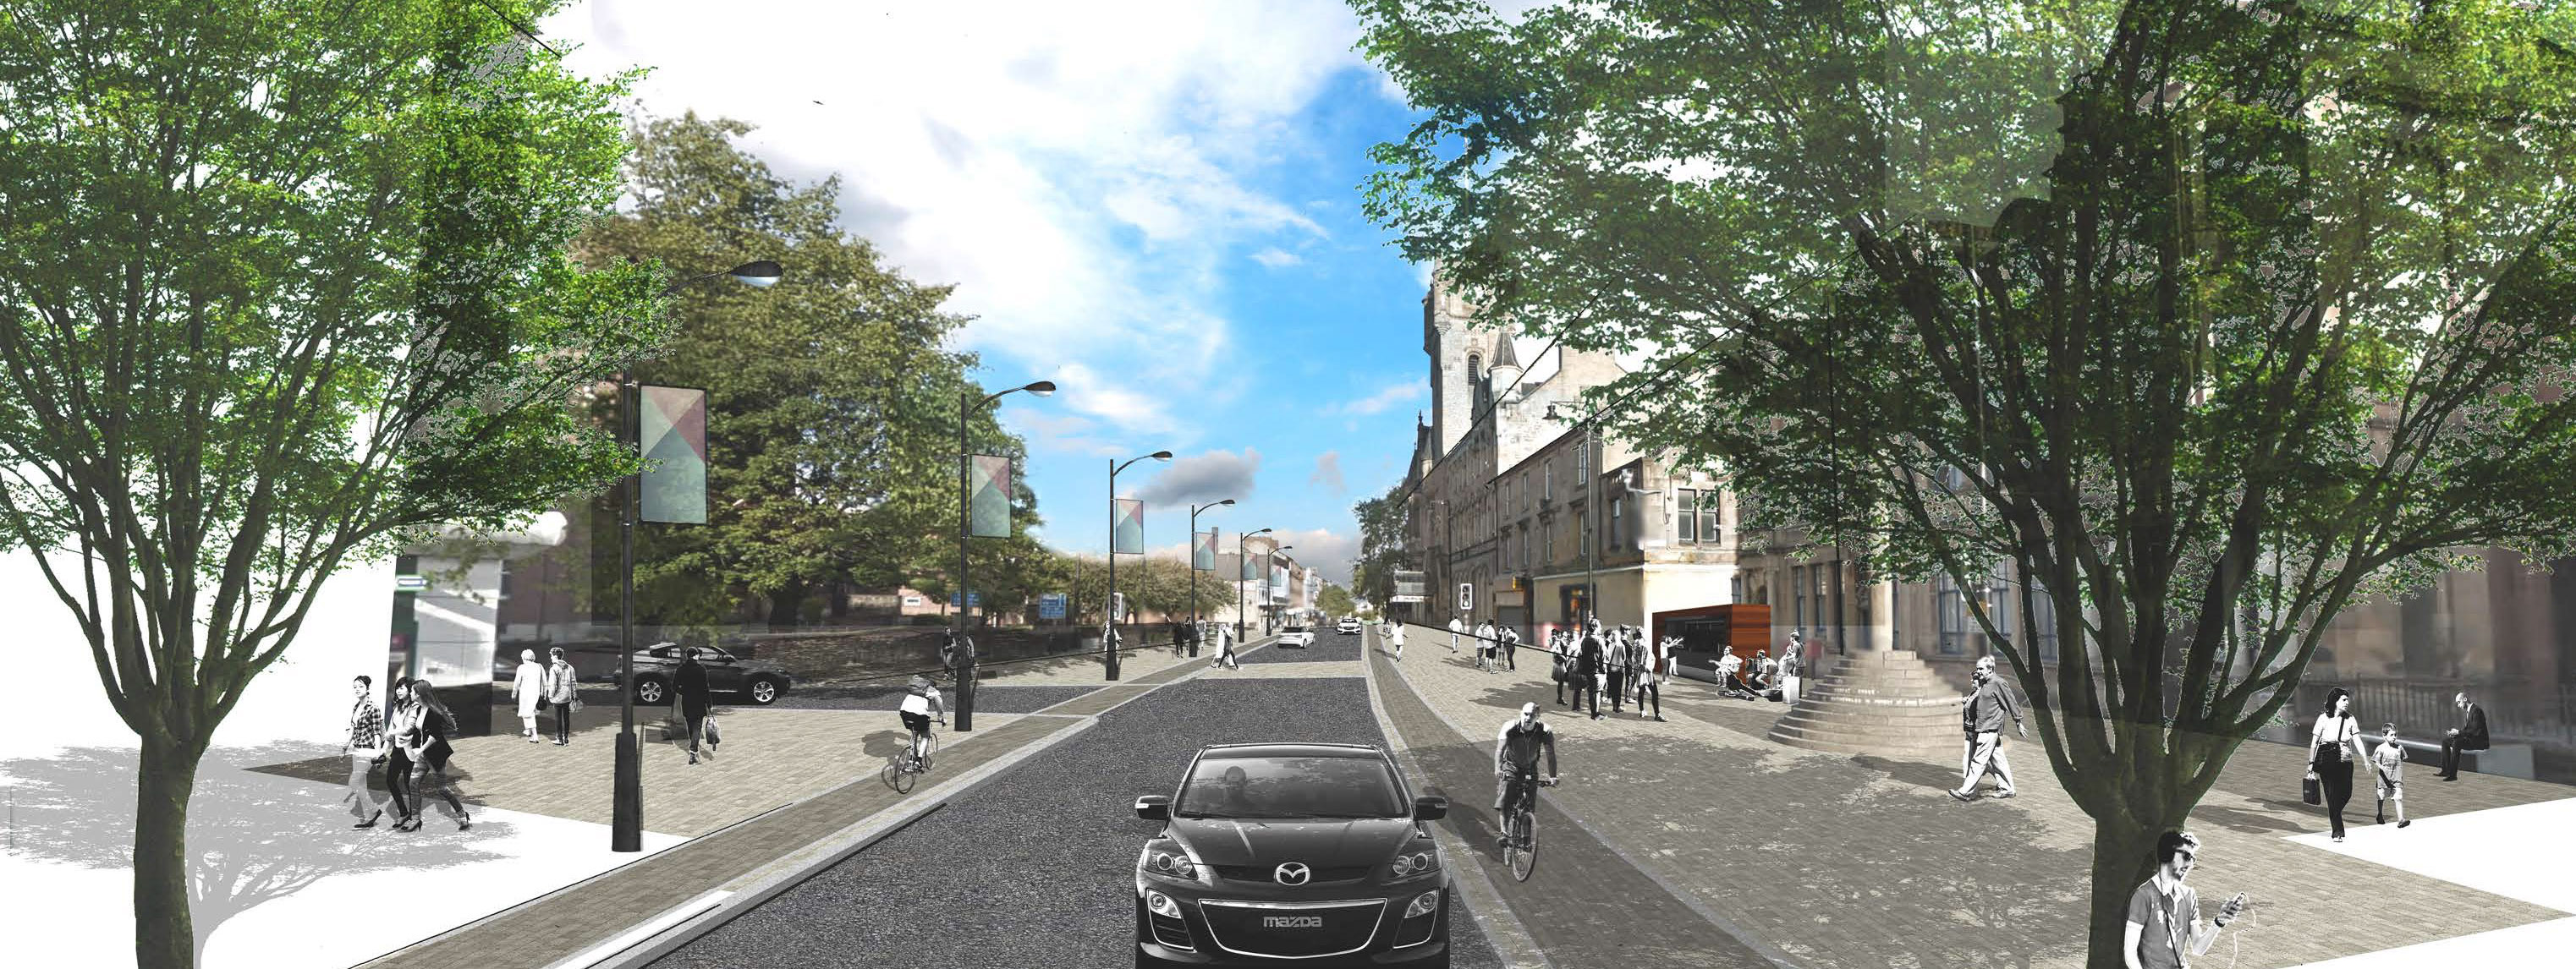 Cambuslang and Rutherglen Street Redesign